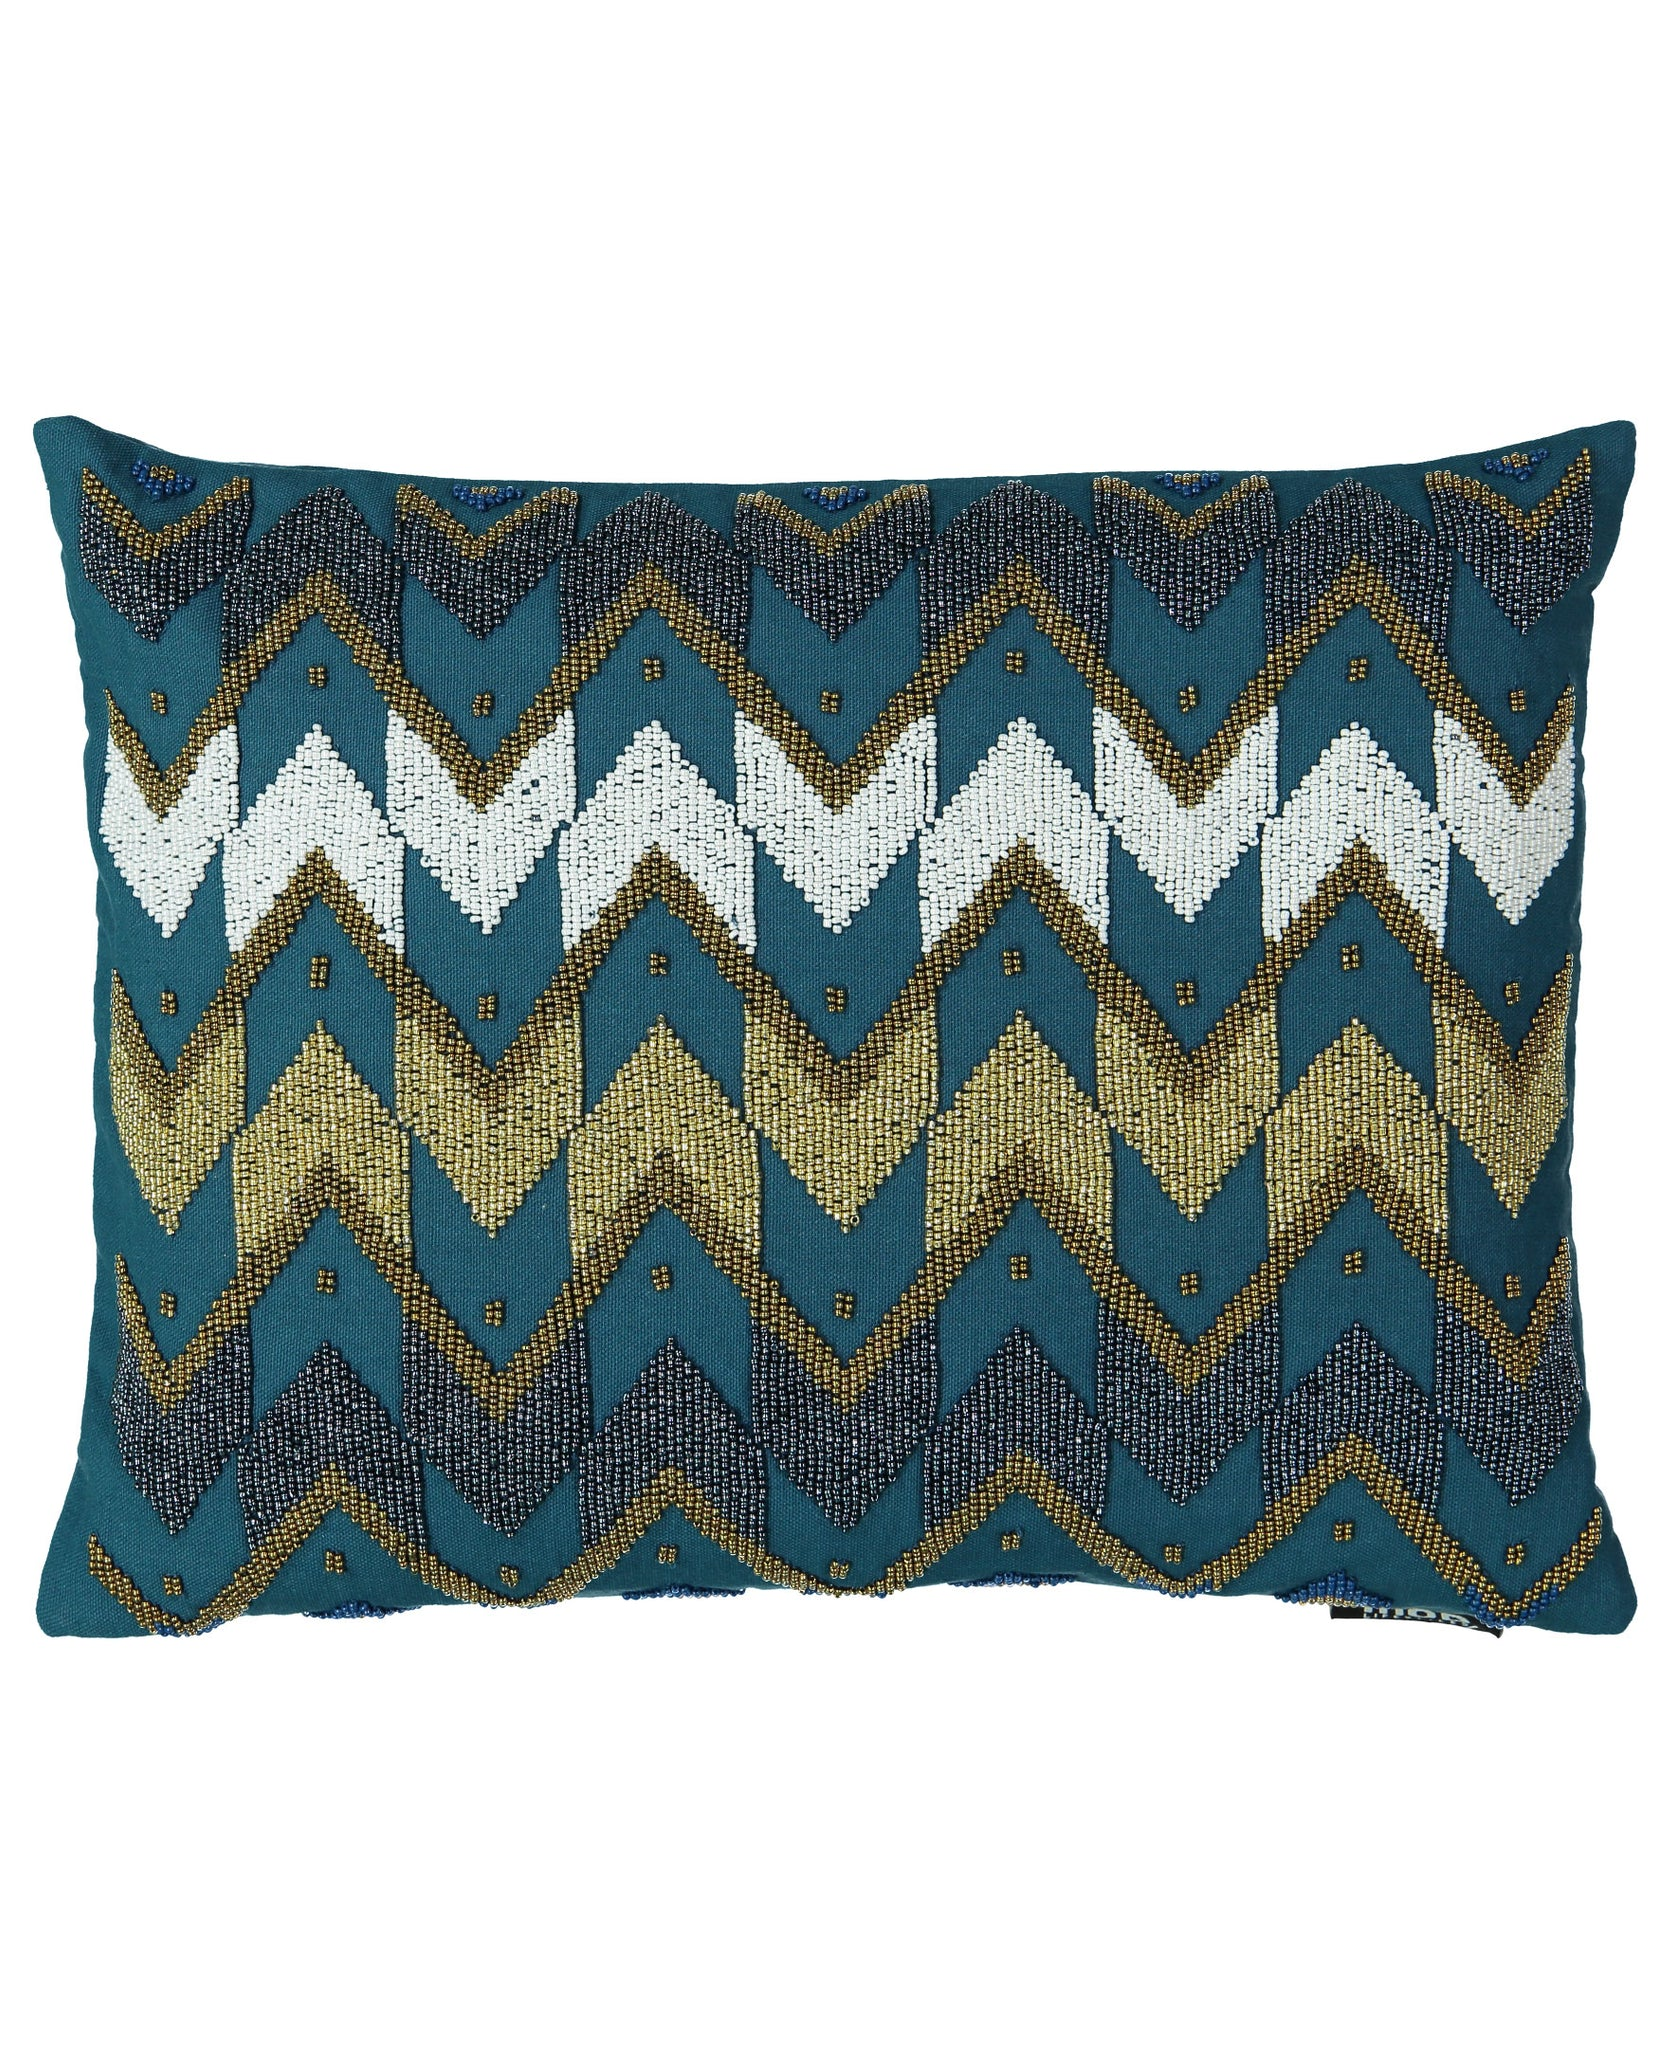 "Dark Blue and Gold Chevron Beads Embroidery Lumbar Pillow, 13"" X 18"" Mod Lifestyles"